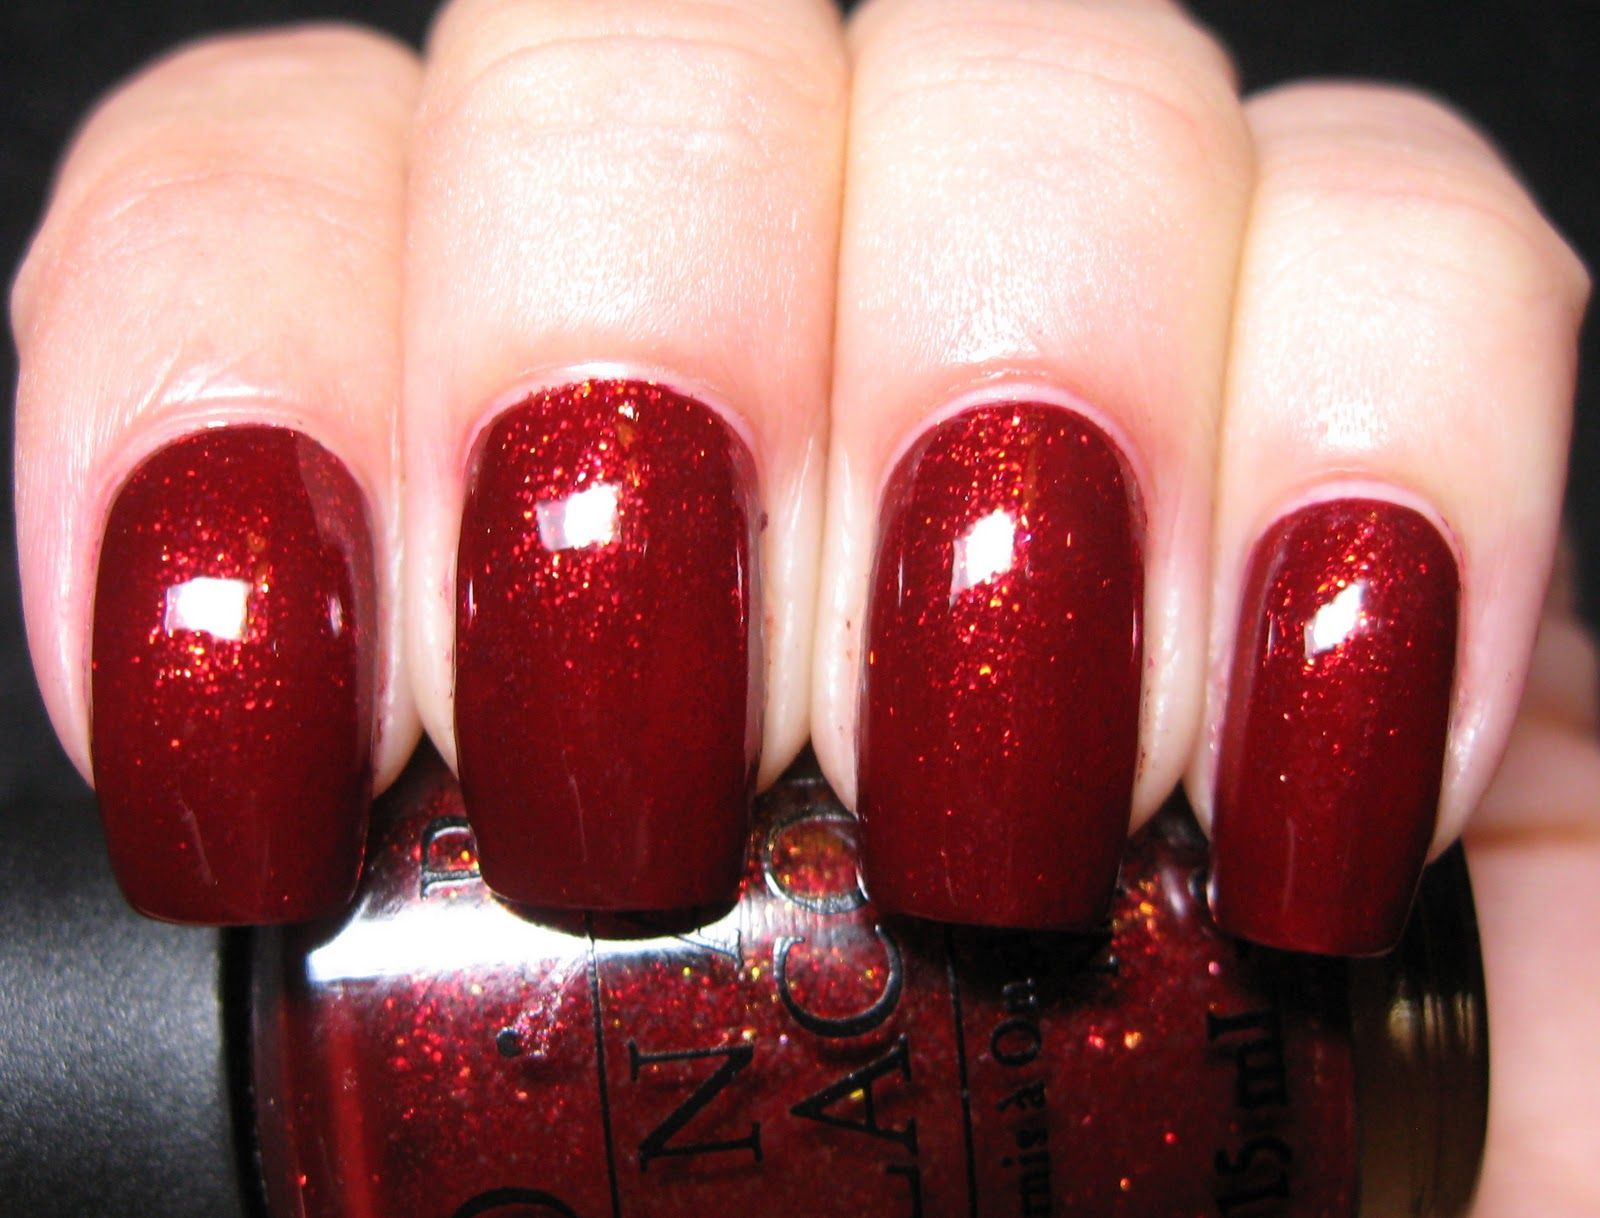 OPI Smitten With Mittens